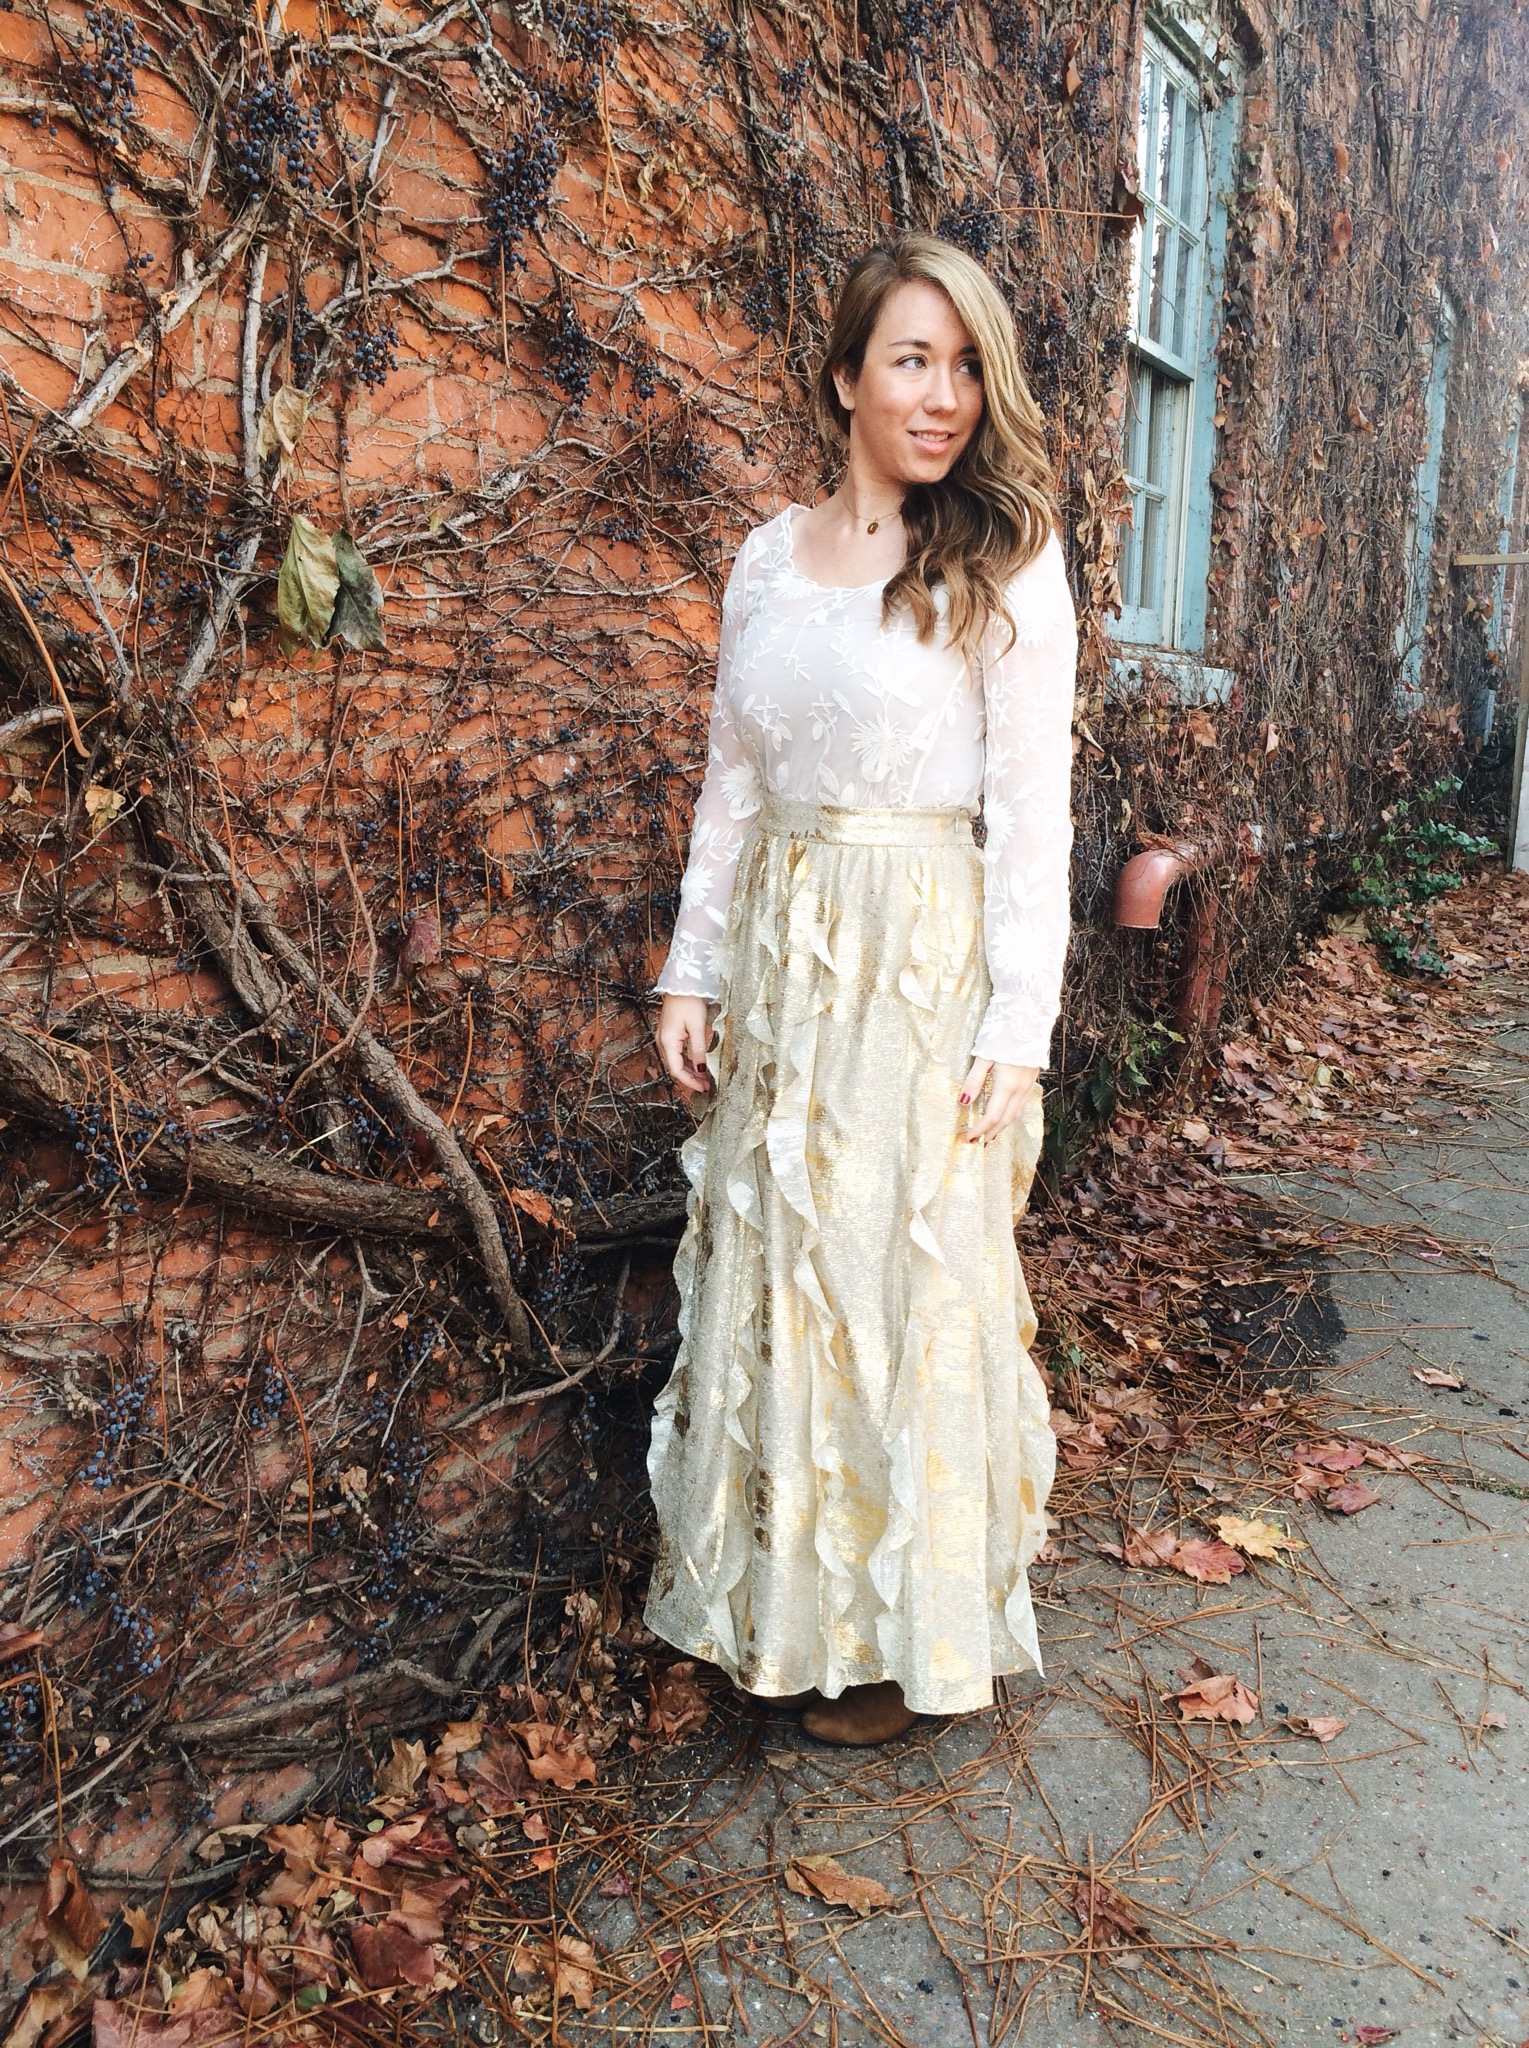 Ootd Anthropologie Snowblossom Blouse And Fallen Star Maxi Skirt